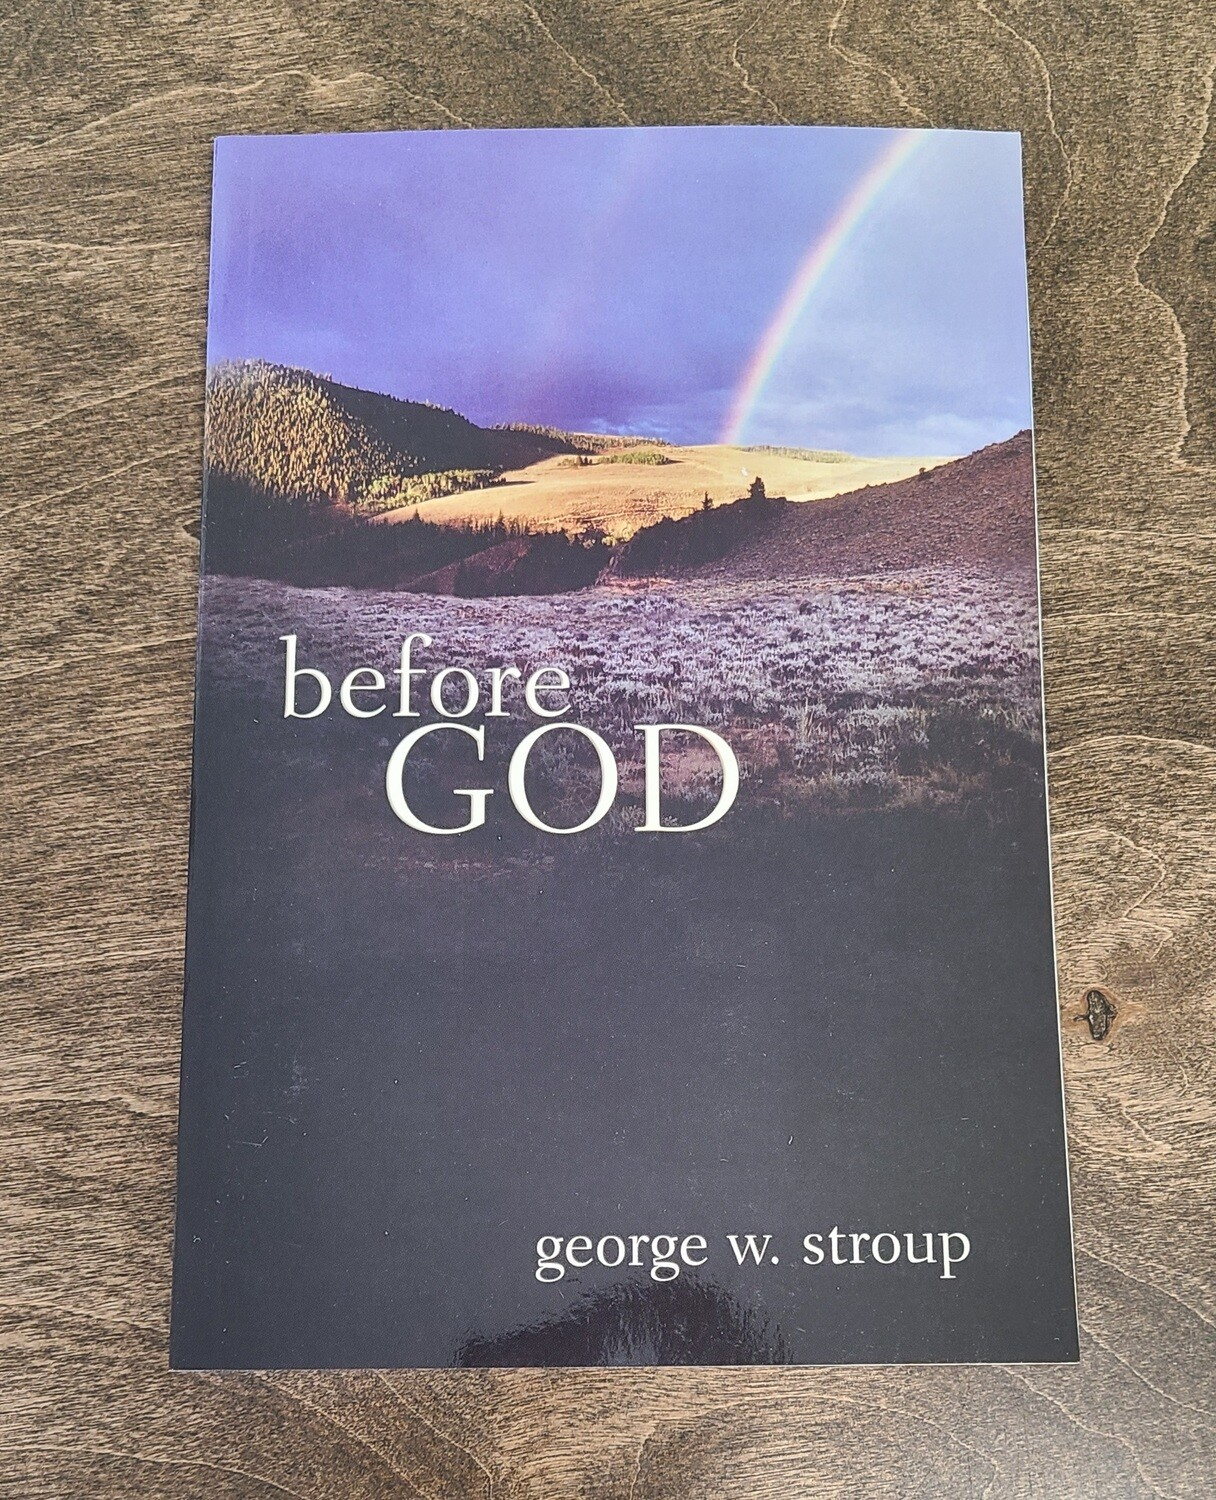 Before God by George W. Stroup